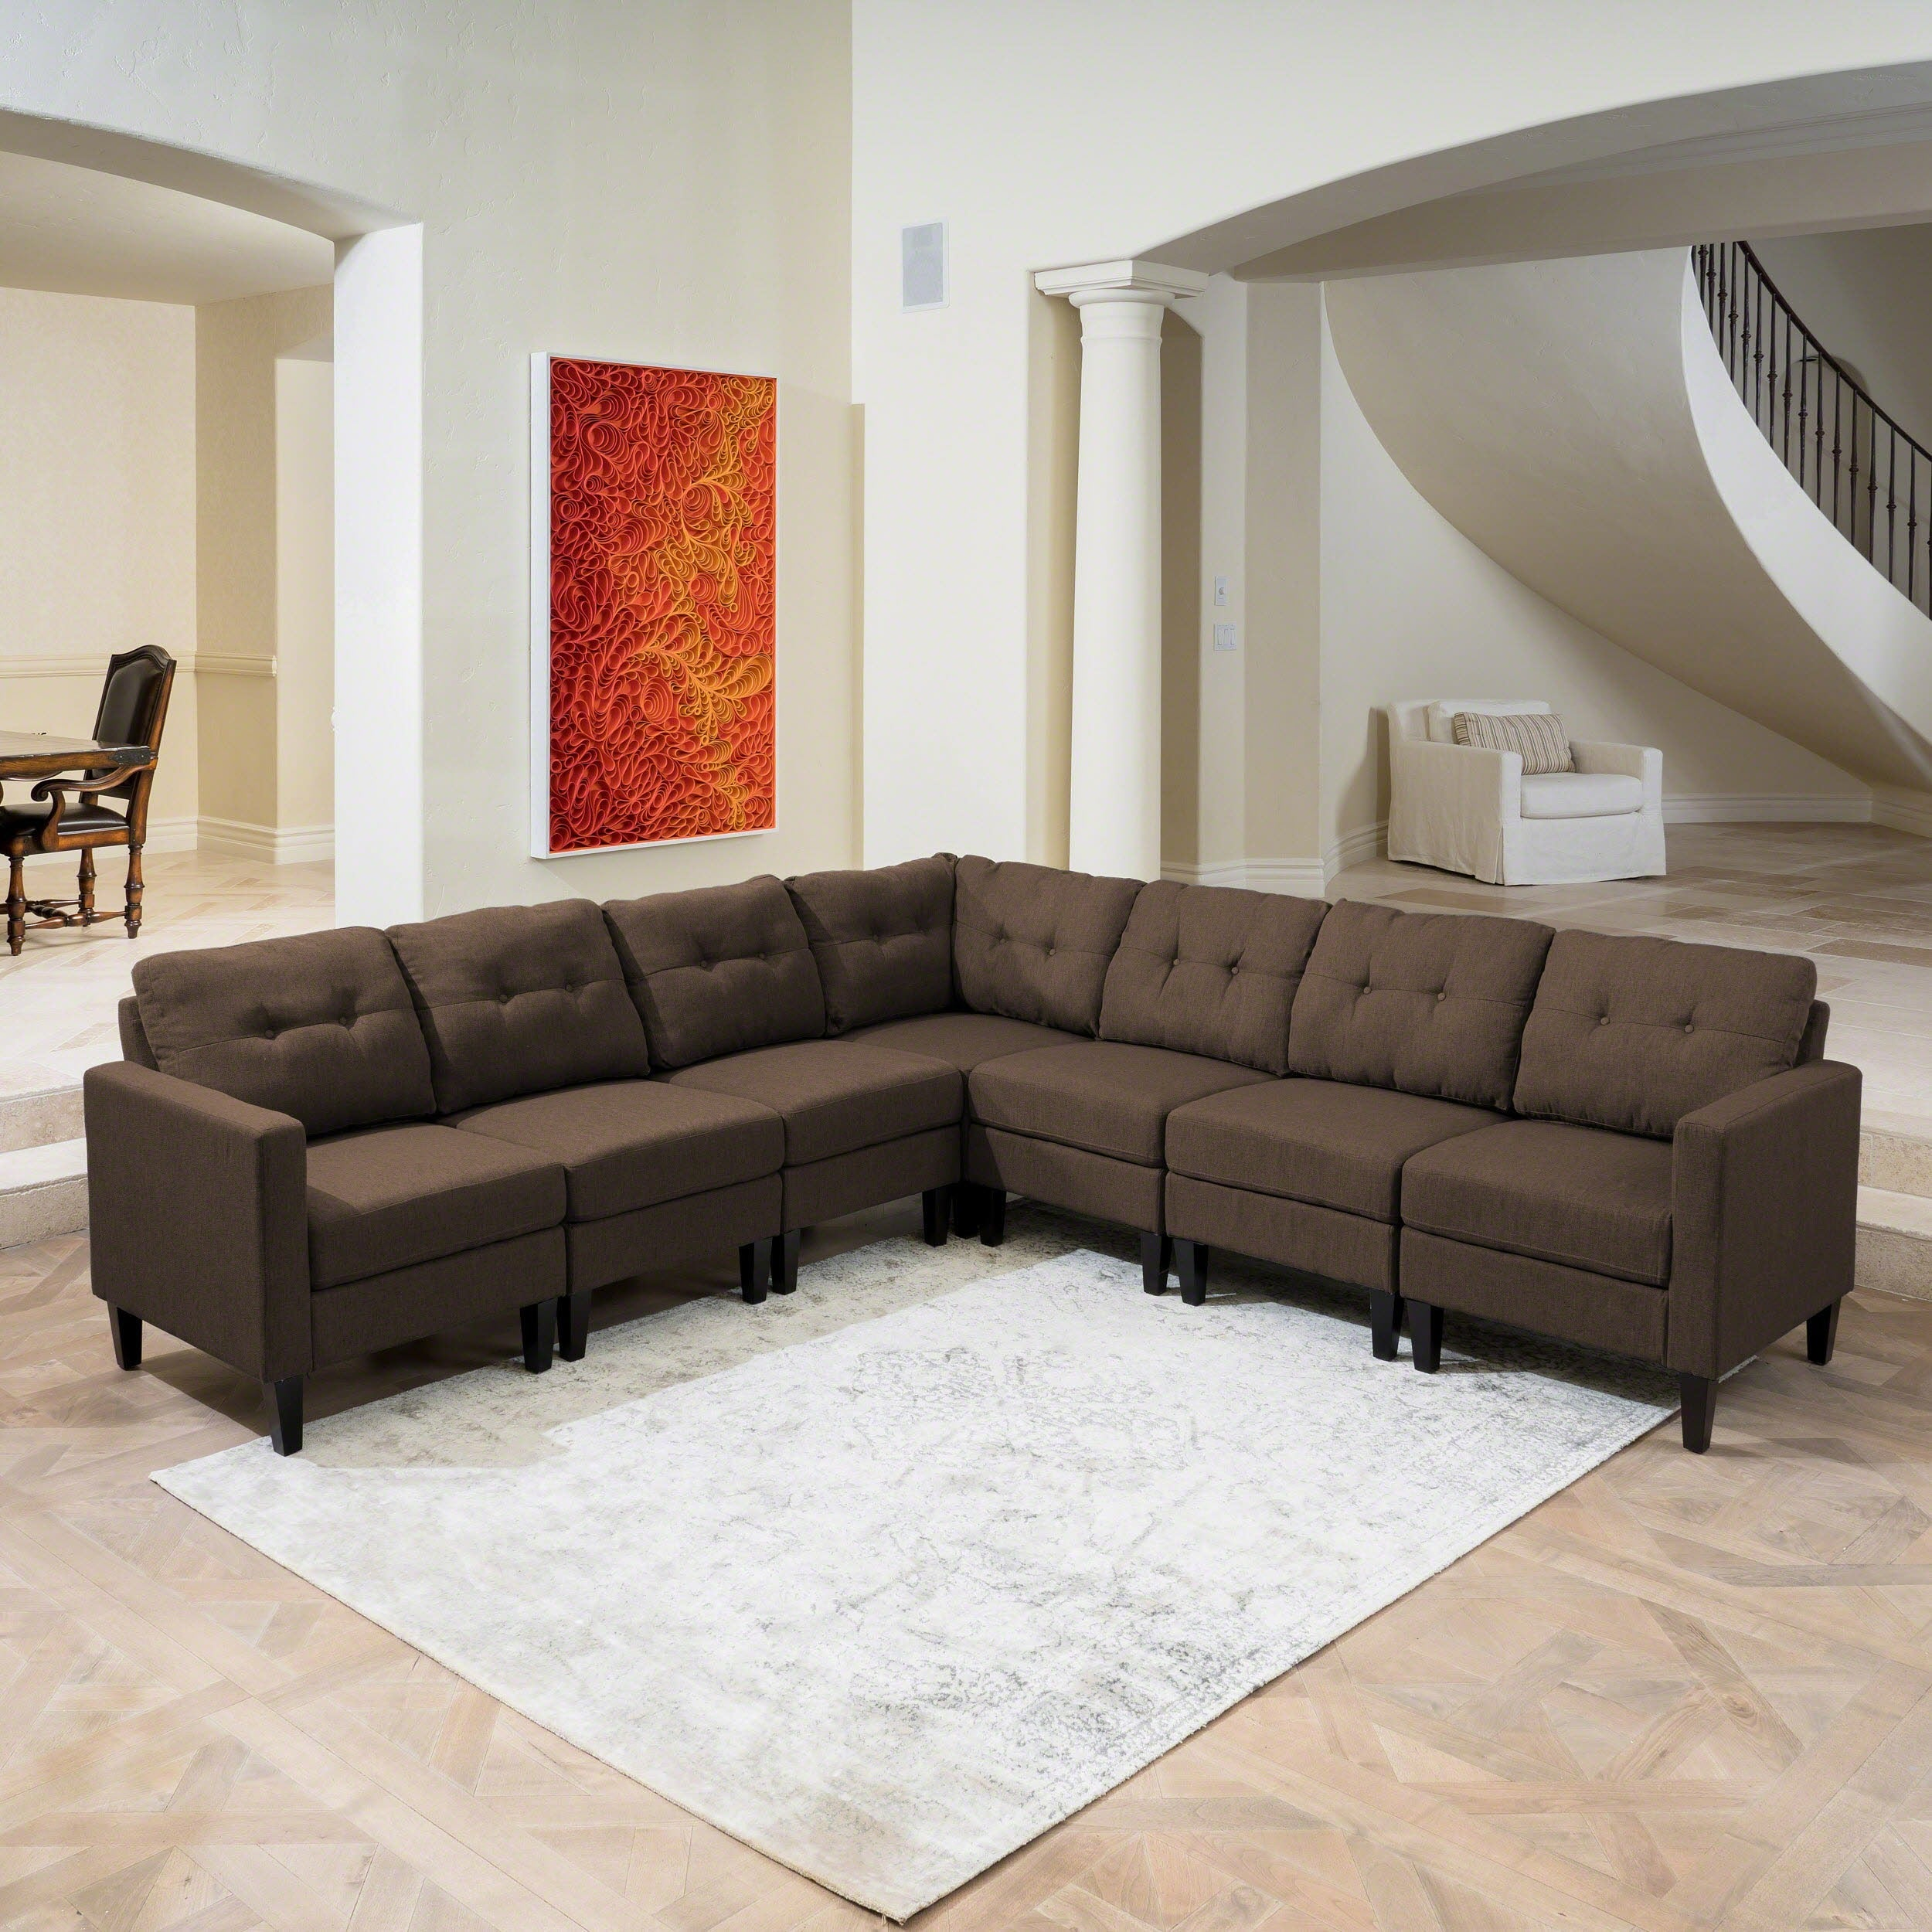 Incredible Emmie Mid Century Modern 7 Piece Sectional Sofa Set By Christopher Knight Home Onthecornerstone Fun Painted Chair Ideas Images Onthecornerstoneorg